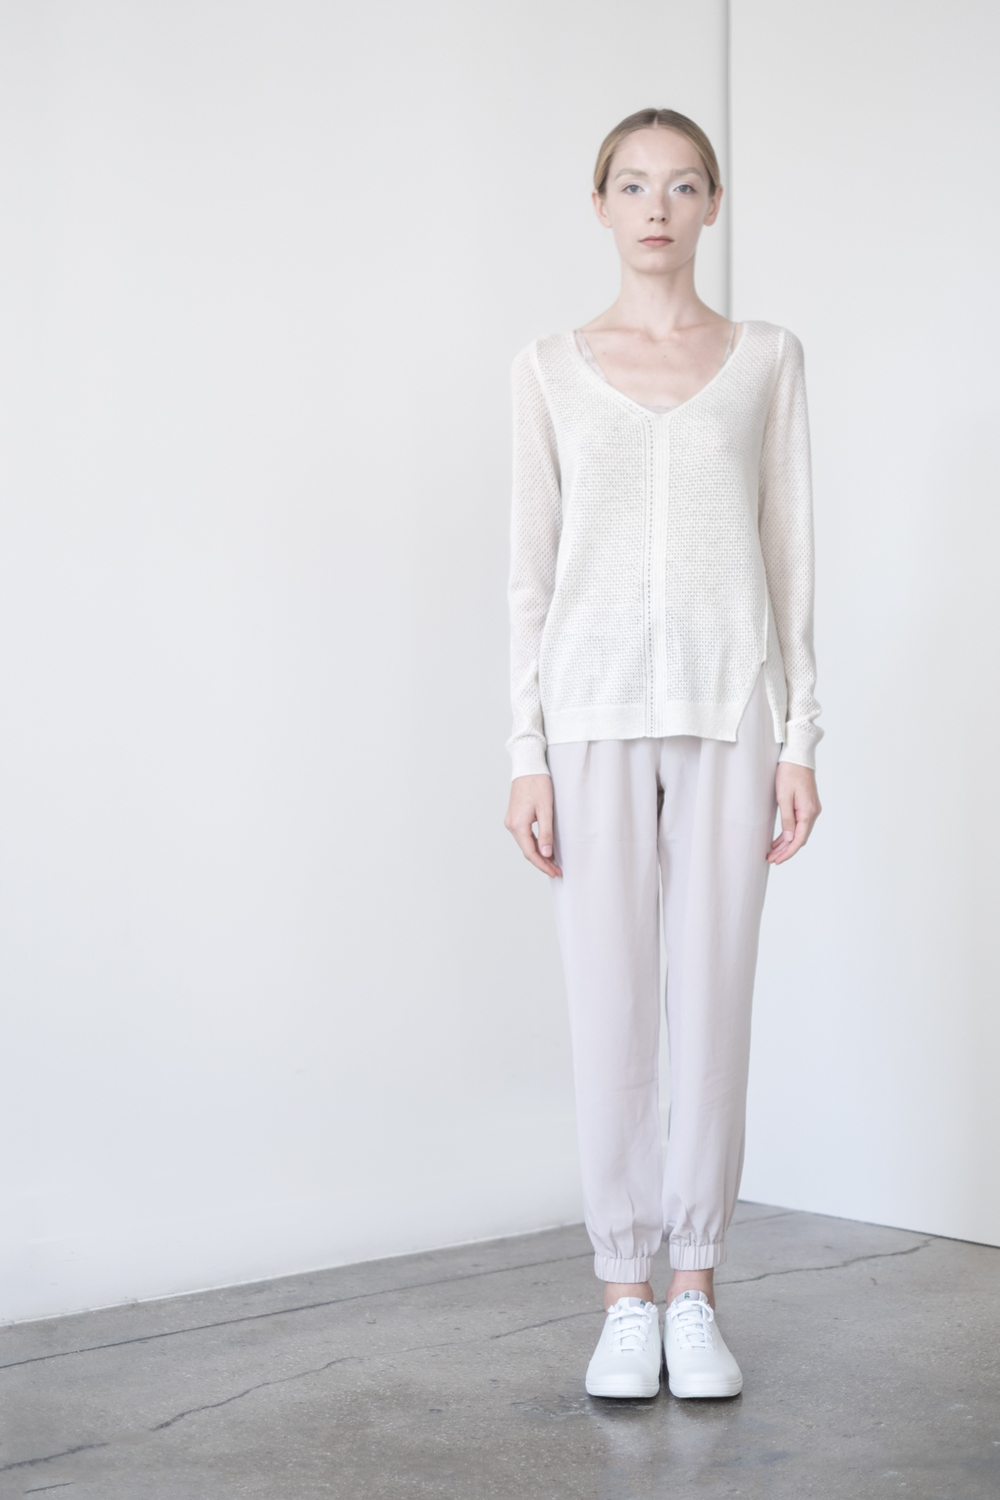 "LOOK 17   TOP:   2276  / Bone   -           0   0   2015-09-15T00:56:00Z   1   9   53   Rick Owens   1   1   61   14.0                       Normal   0             false   false   false     EN-US   JA   X-NONE                                                                                                                                                                                                                                                                                                                                                                               /* Style Definitions */ table.MsoNormalTable 	{mso-style-name:""Table Normal""; 	mso-tstyle-rowband-size:0; 	mso-tstyle-colband-size:0; 	mso-style-noshow:yes; 	mso-style-priority:99; 	mso-style-parent:""""; 	mso-padding-alt:0in 5.4pt 0in 5.4pt; 	mso-para-margin:0in; 	mso-para-margin-bottom:.0001pt; 	mso-pagination:widow-orphan; 	font-size:12.0pt; 	font-family:Cambria; 	mso-ascii-font-family:Cambria; 	mso-ascii-theme-font:minor-latin; 	mso-hansi-font-family:Cambria; 	mso-hansi-theme-font:minor-latin;}       Audrey open mix lace stitch pullover, in fine gauge cashmere. WS: 132    BOTTOM:   2203  / Dove -    Jogger pants in 100% Silk.  WS: 123"